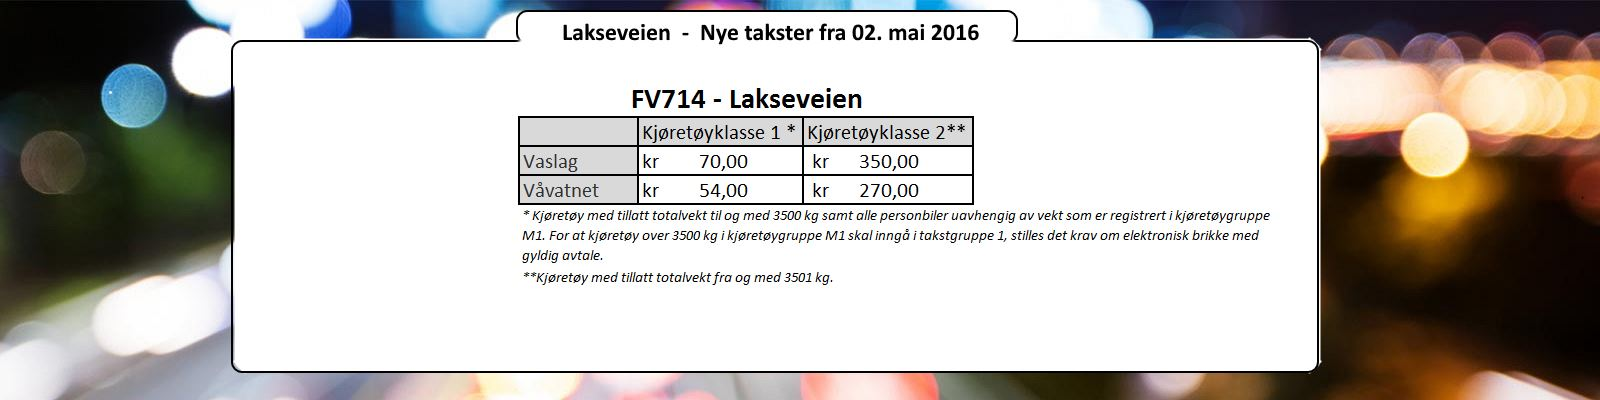 Lakseveien - Nye takster 02. mai 2016